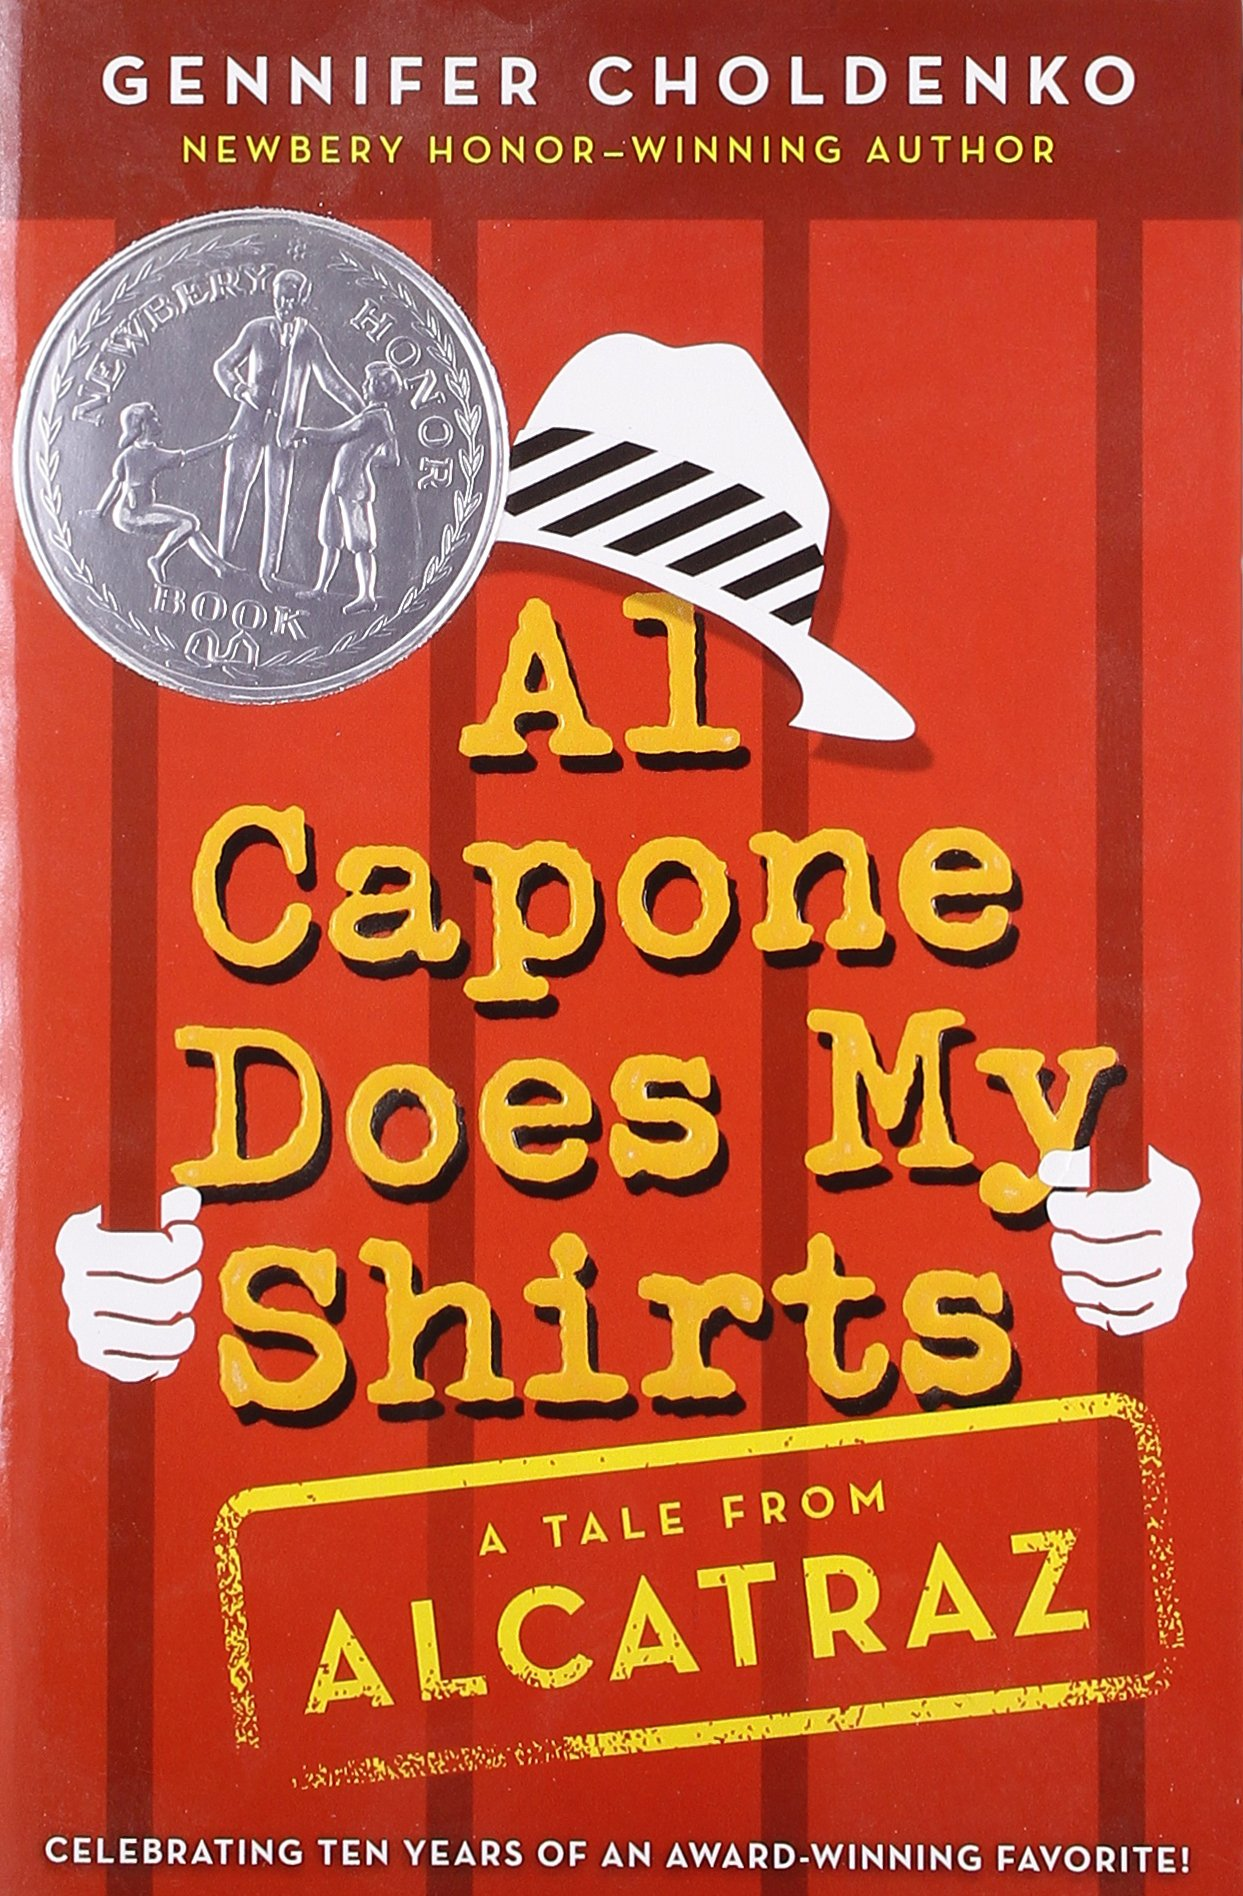 Capone Does Shirts Tales Alcatraz product image